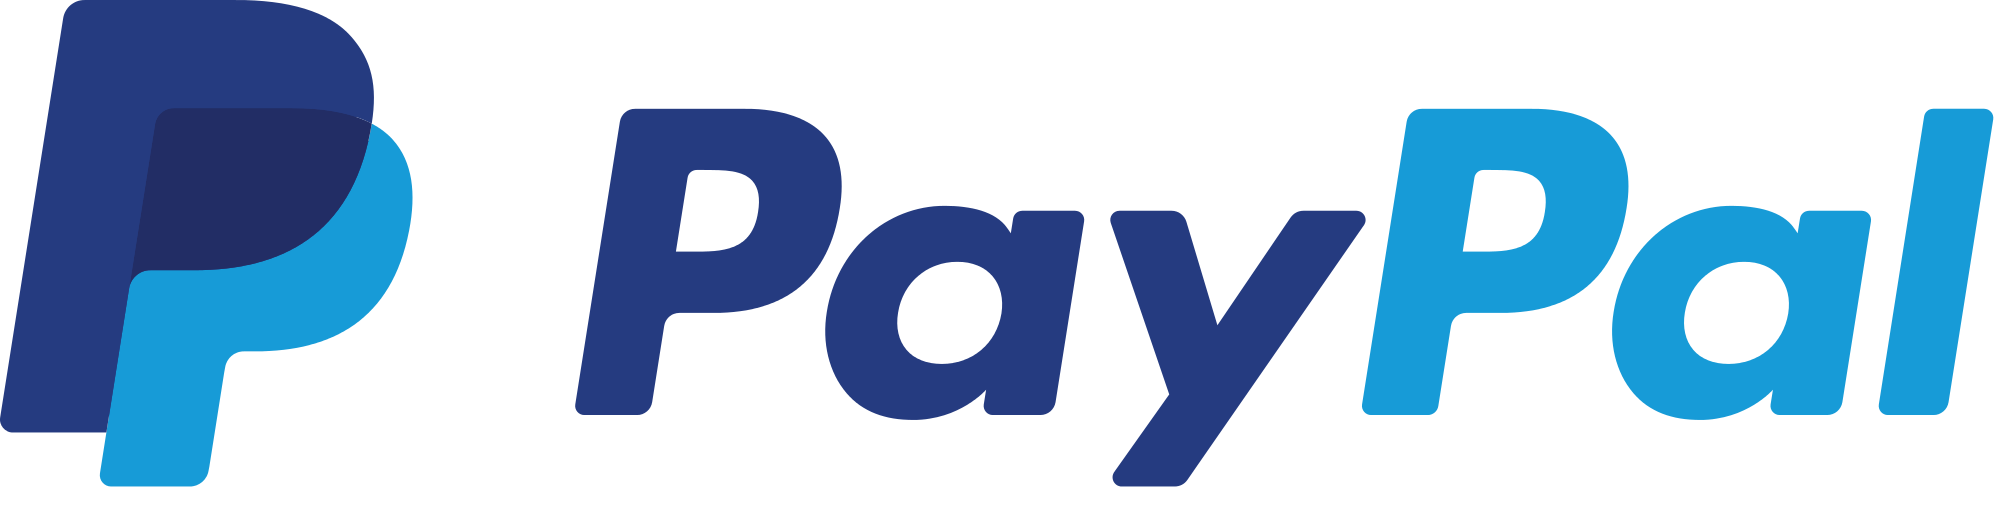 paypal-svg